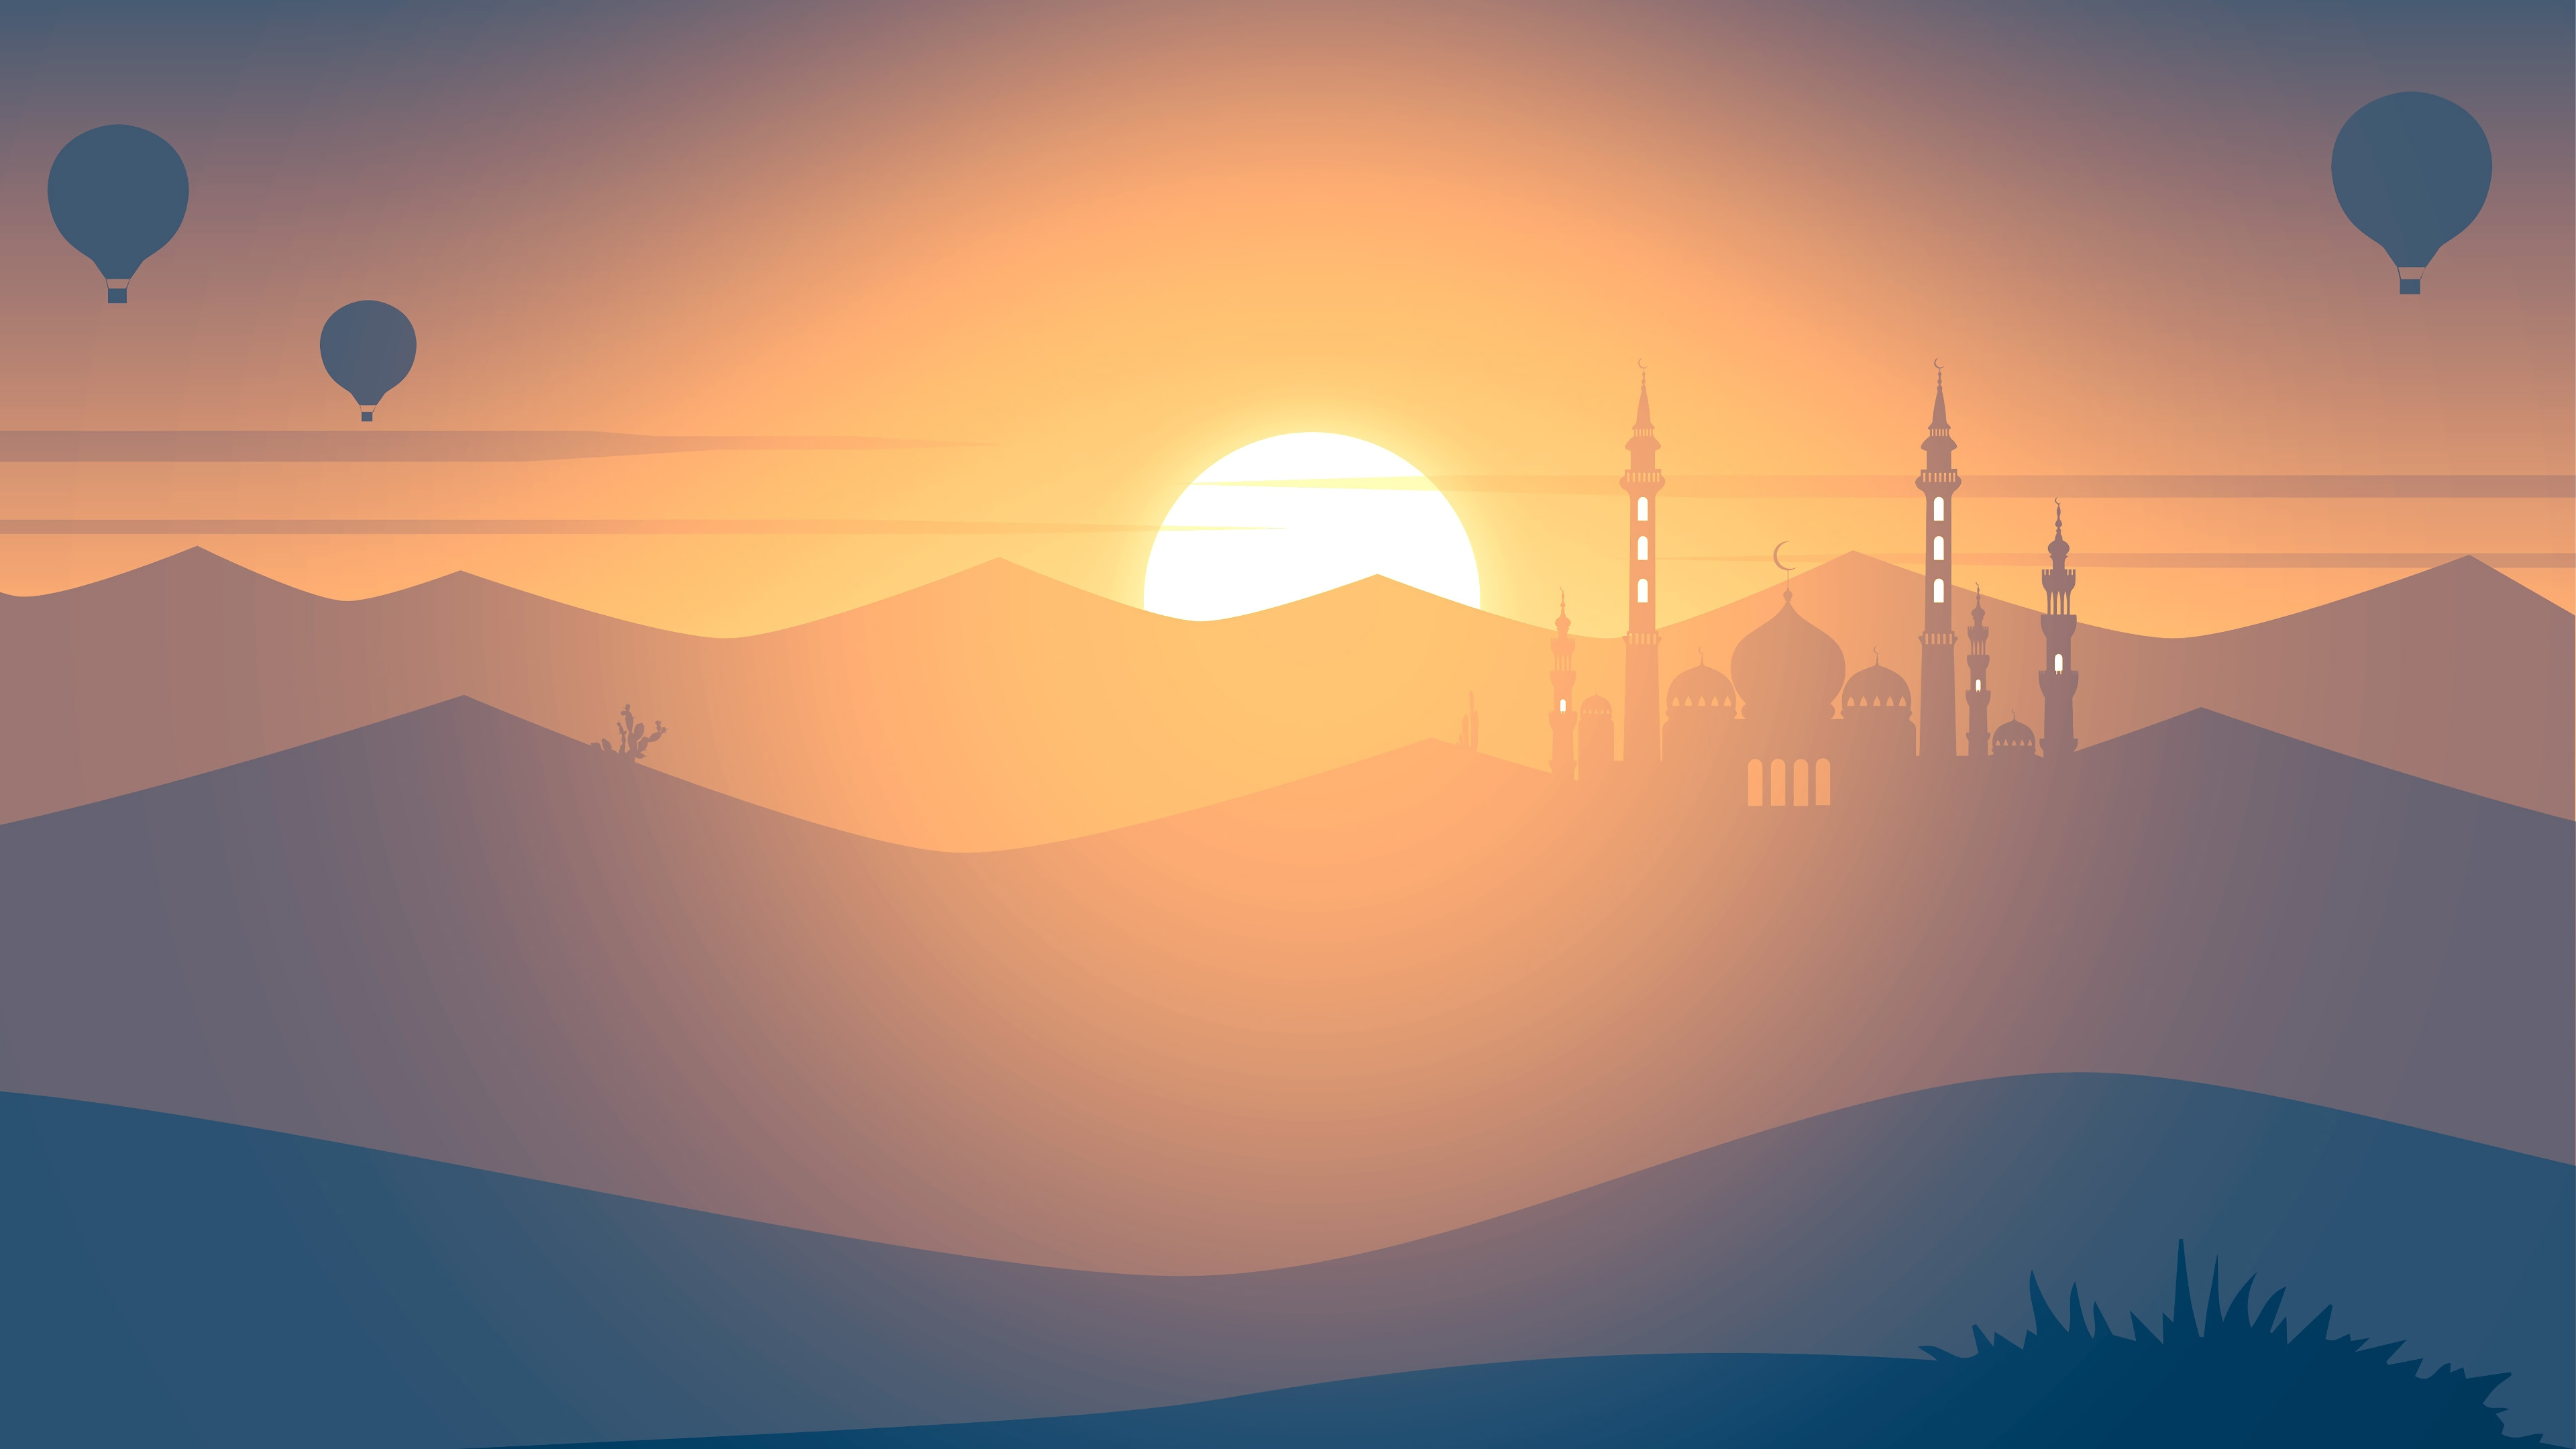 Wallpaper 4k Mosque Minimalism 4k 4k Wallpapers Artist